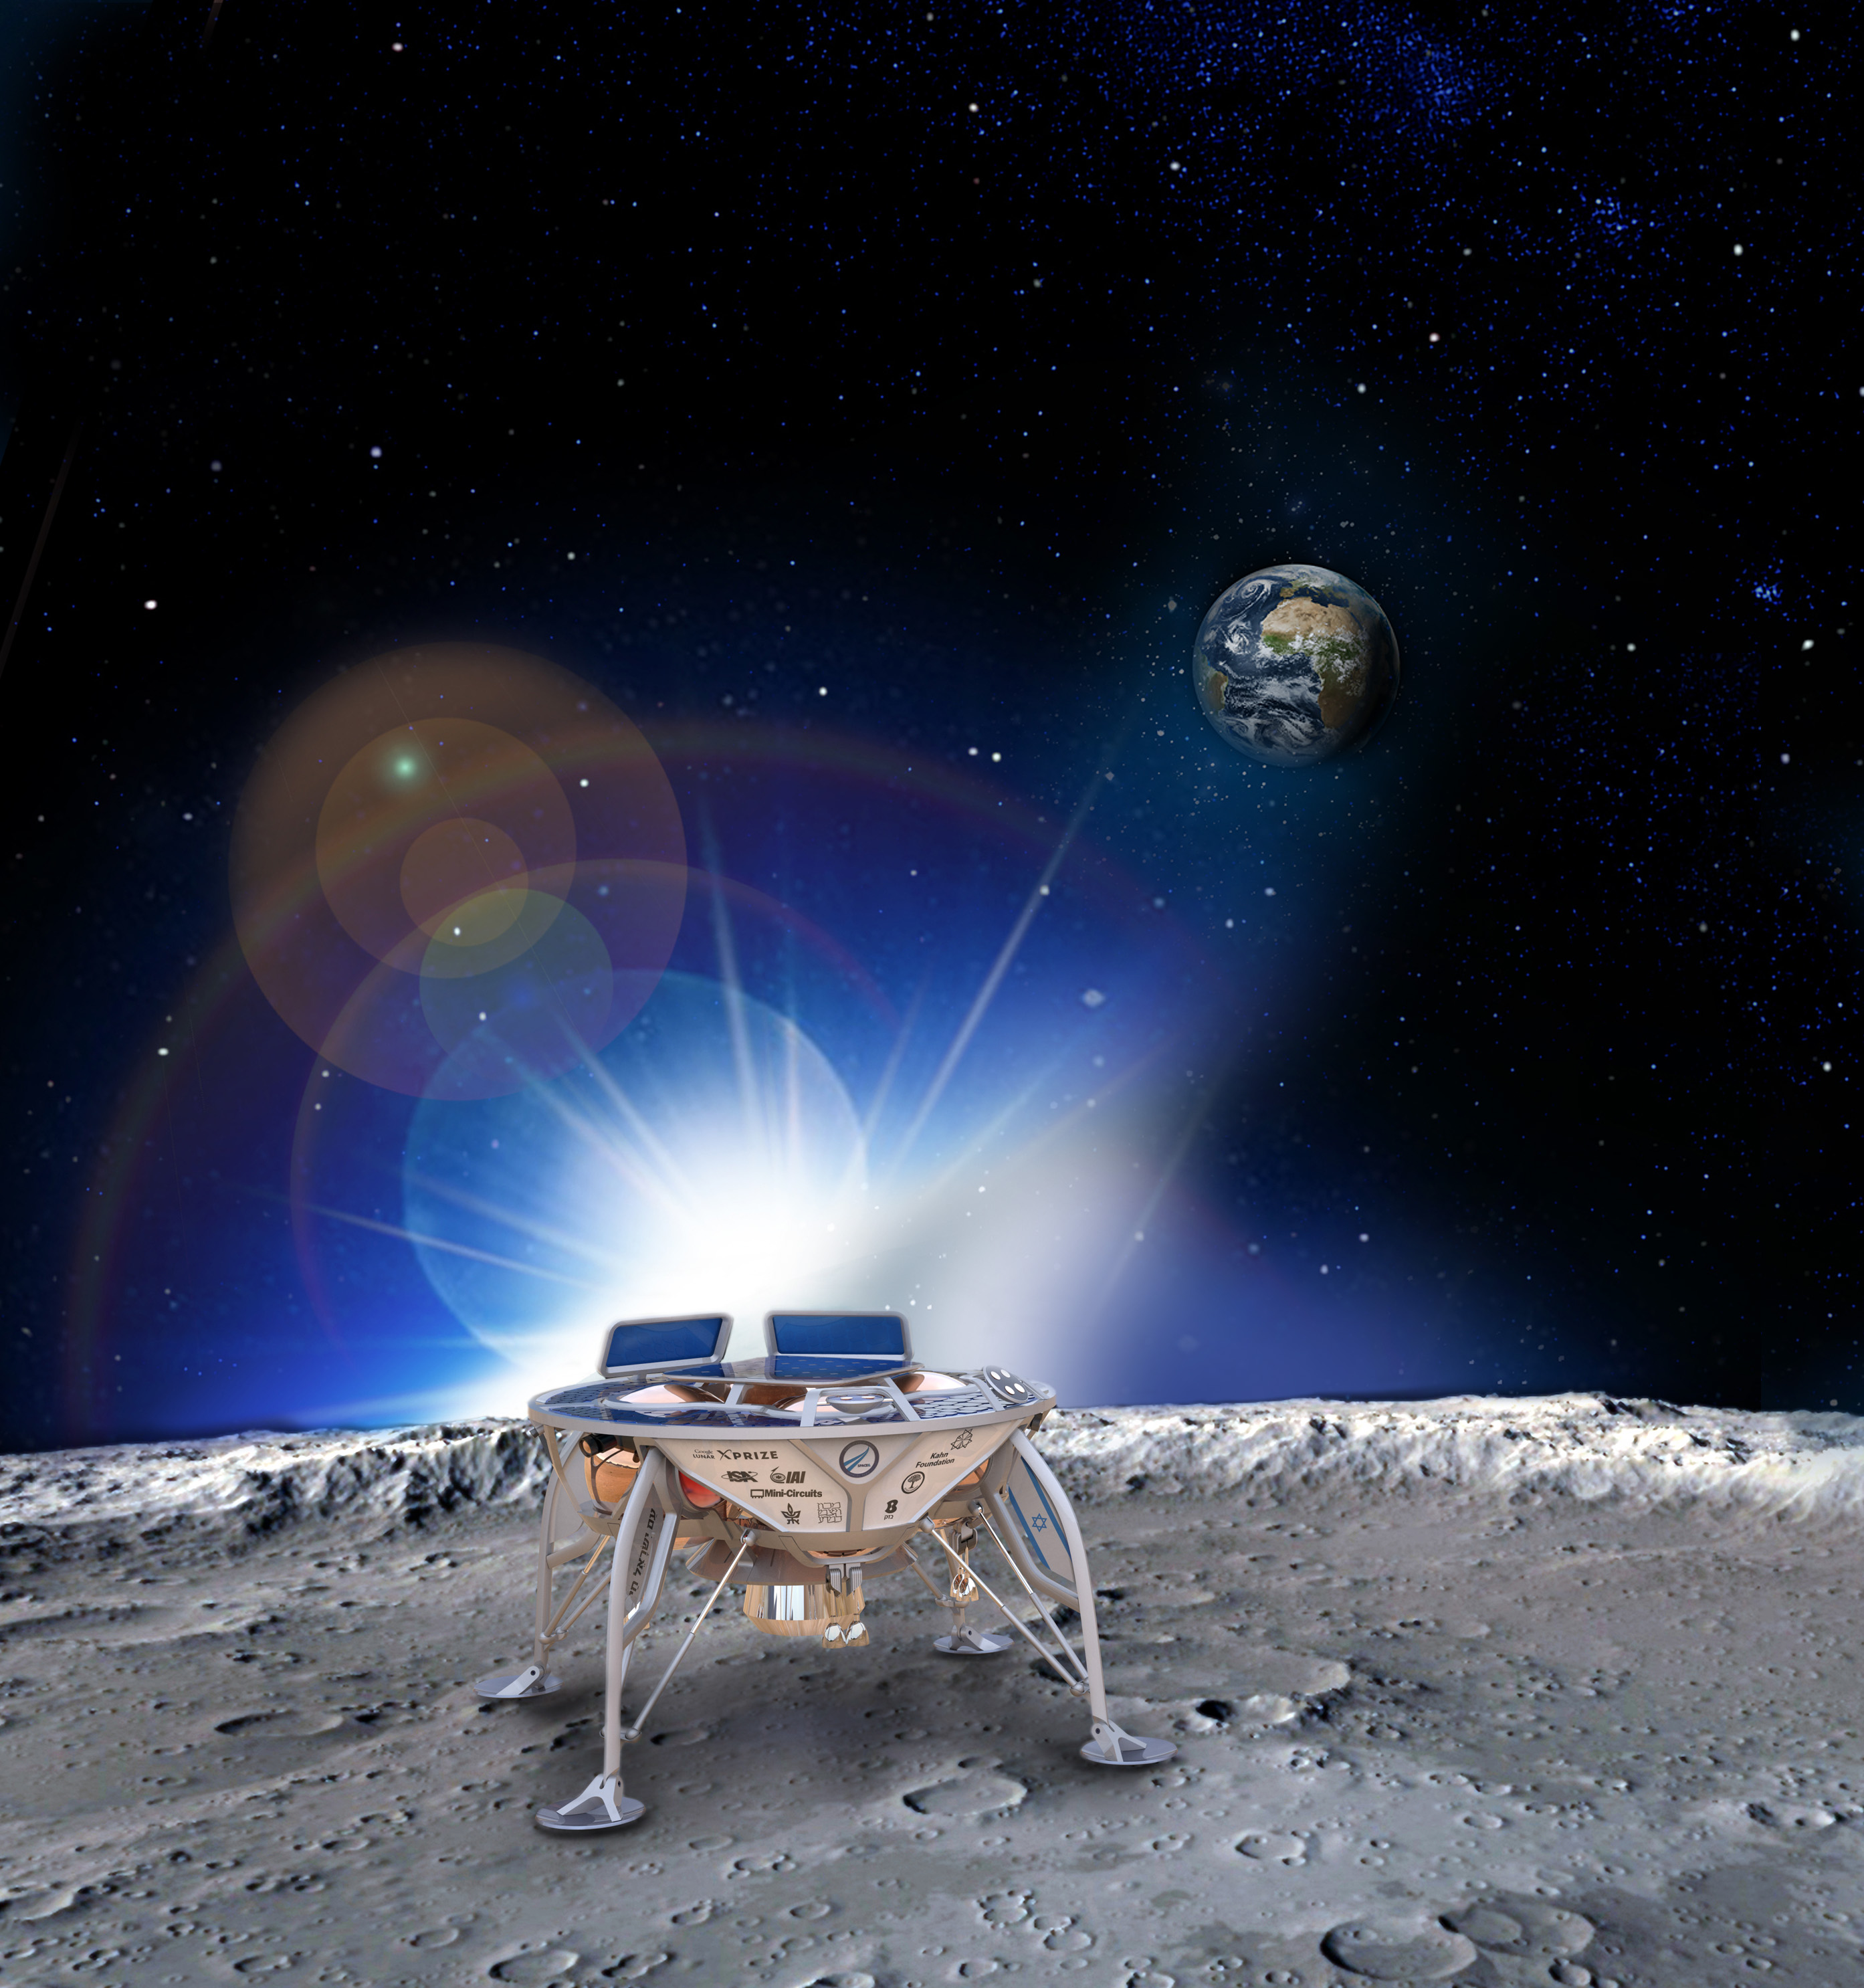 Courtesy of SpaceIL, Google Lunar XPRIZE